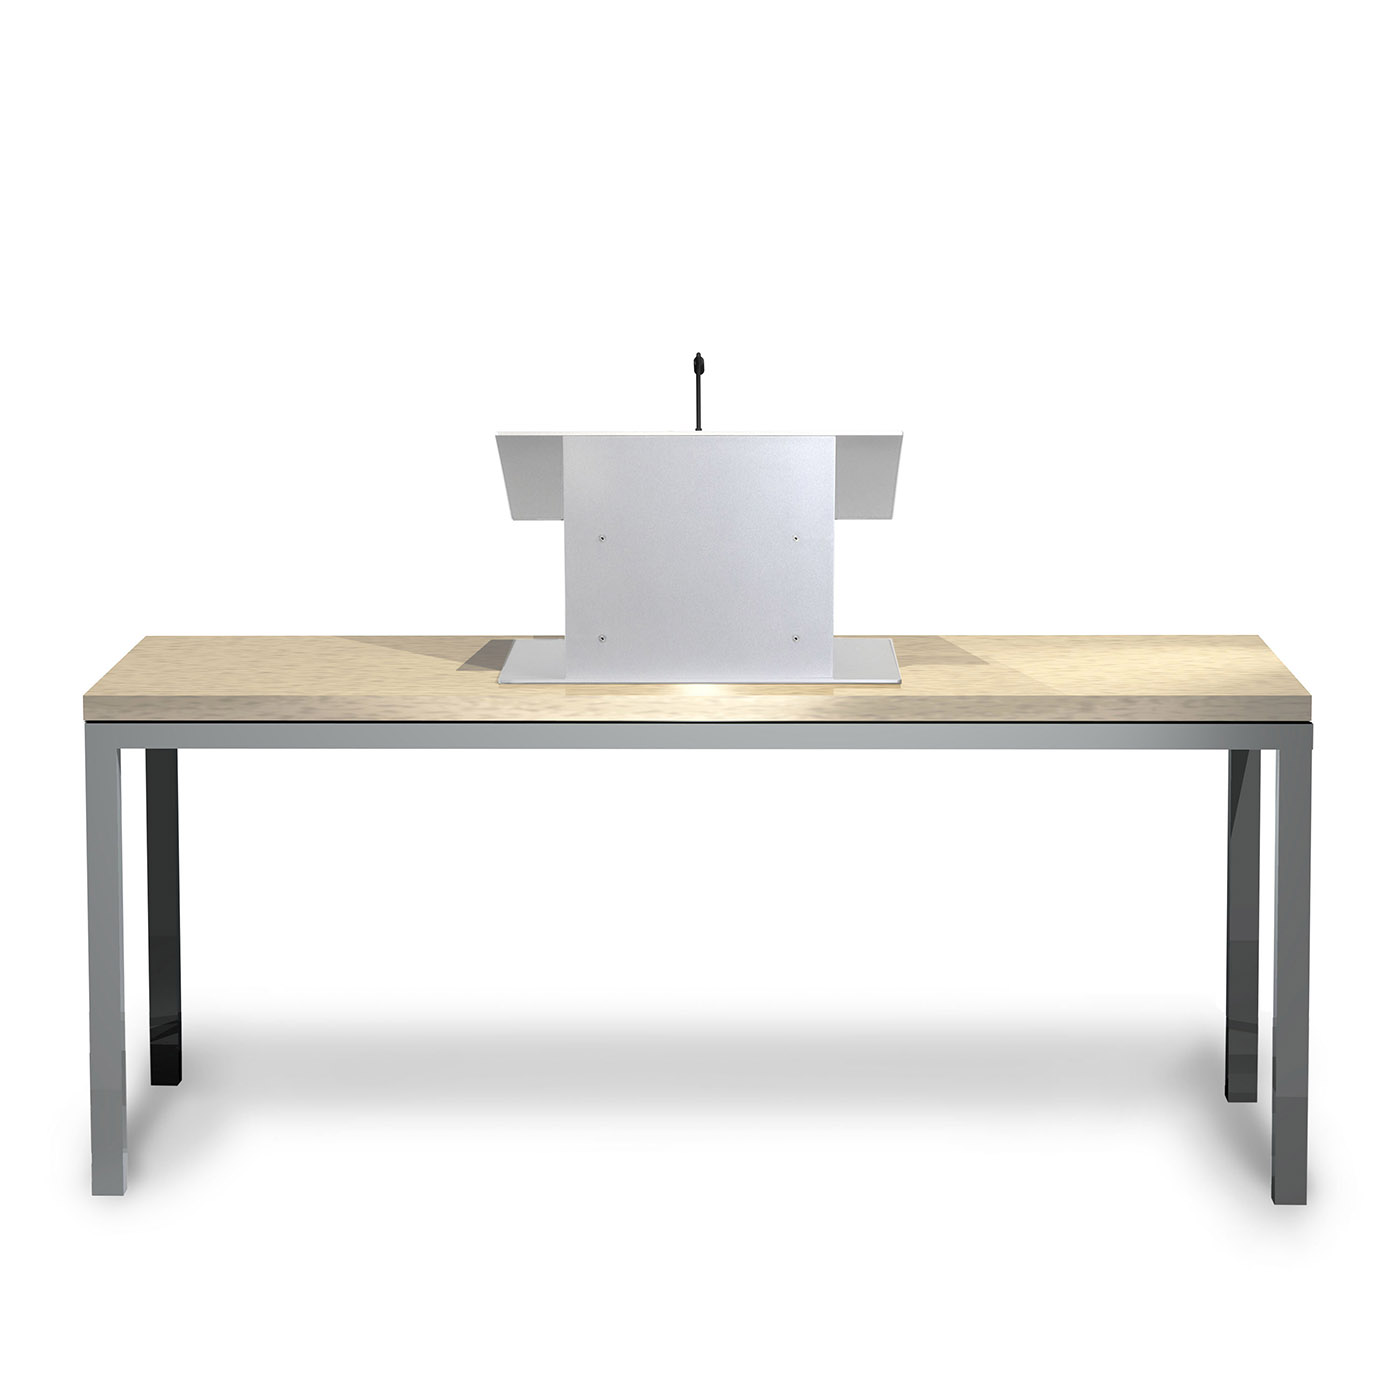 Urbann K8 front table